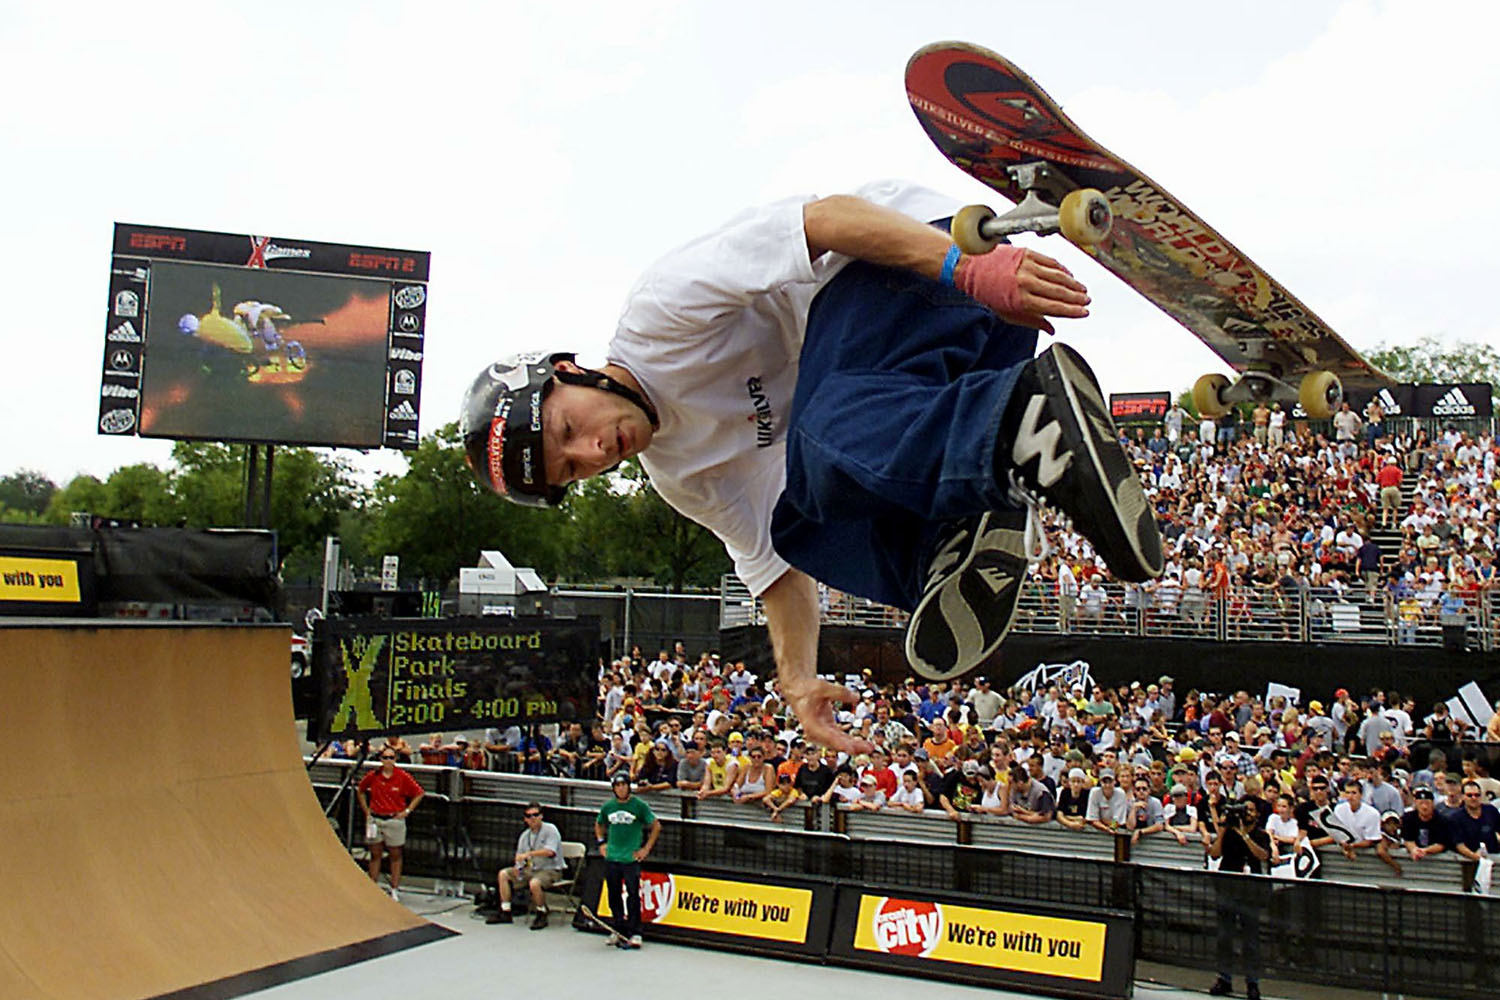 Roman Hackl busts out some moves during the Men's Skateboard Park Final's at the 2001 Summer X Games at the First Union Complex in Philadelphia, PA on 20 August 2001.